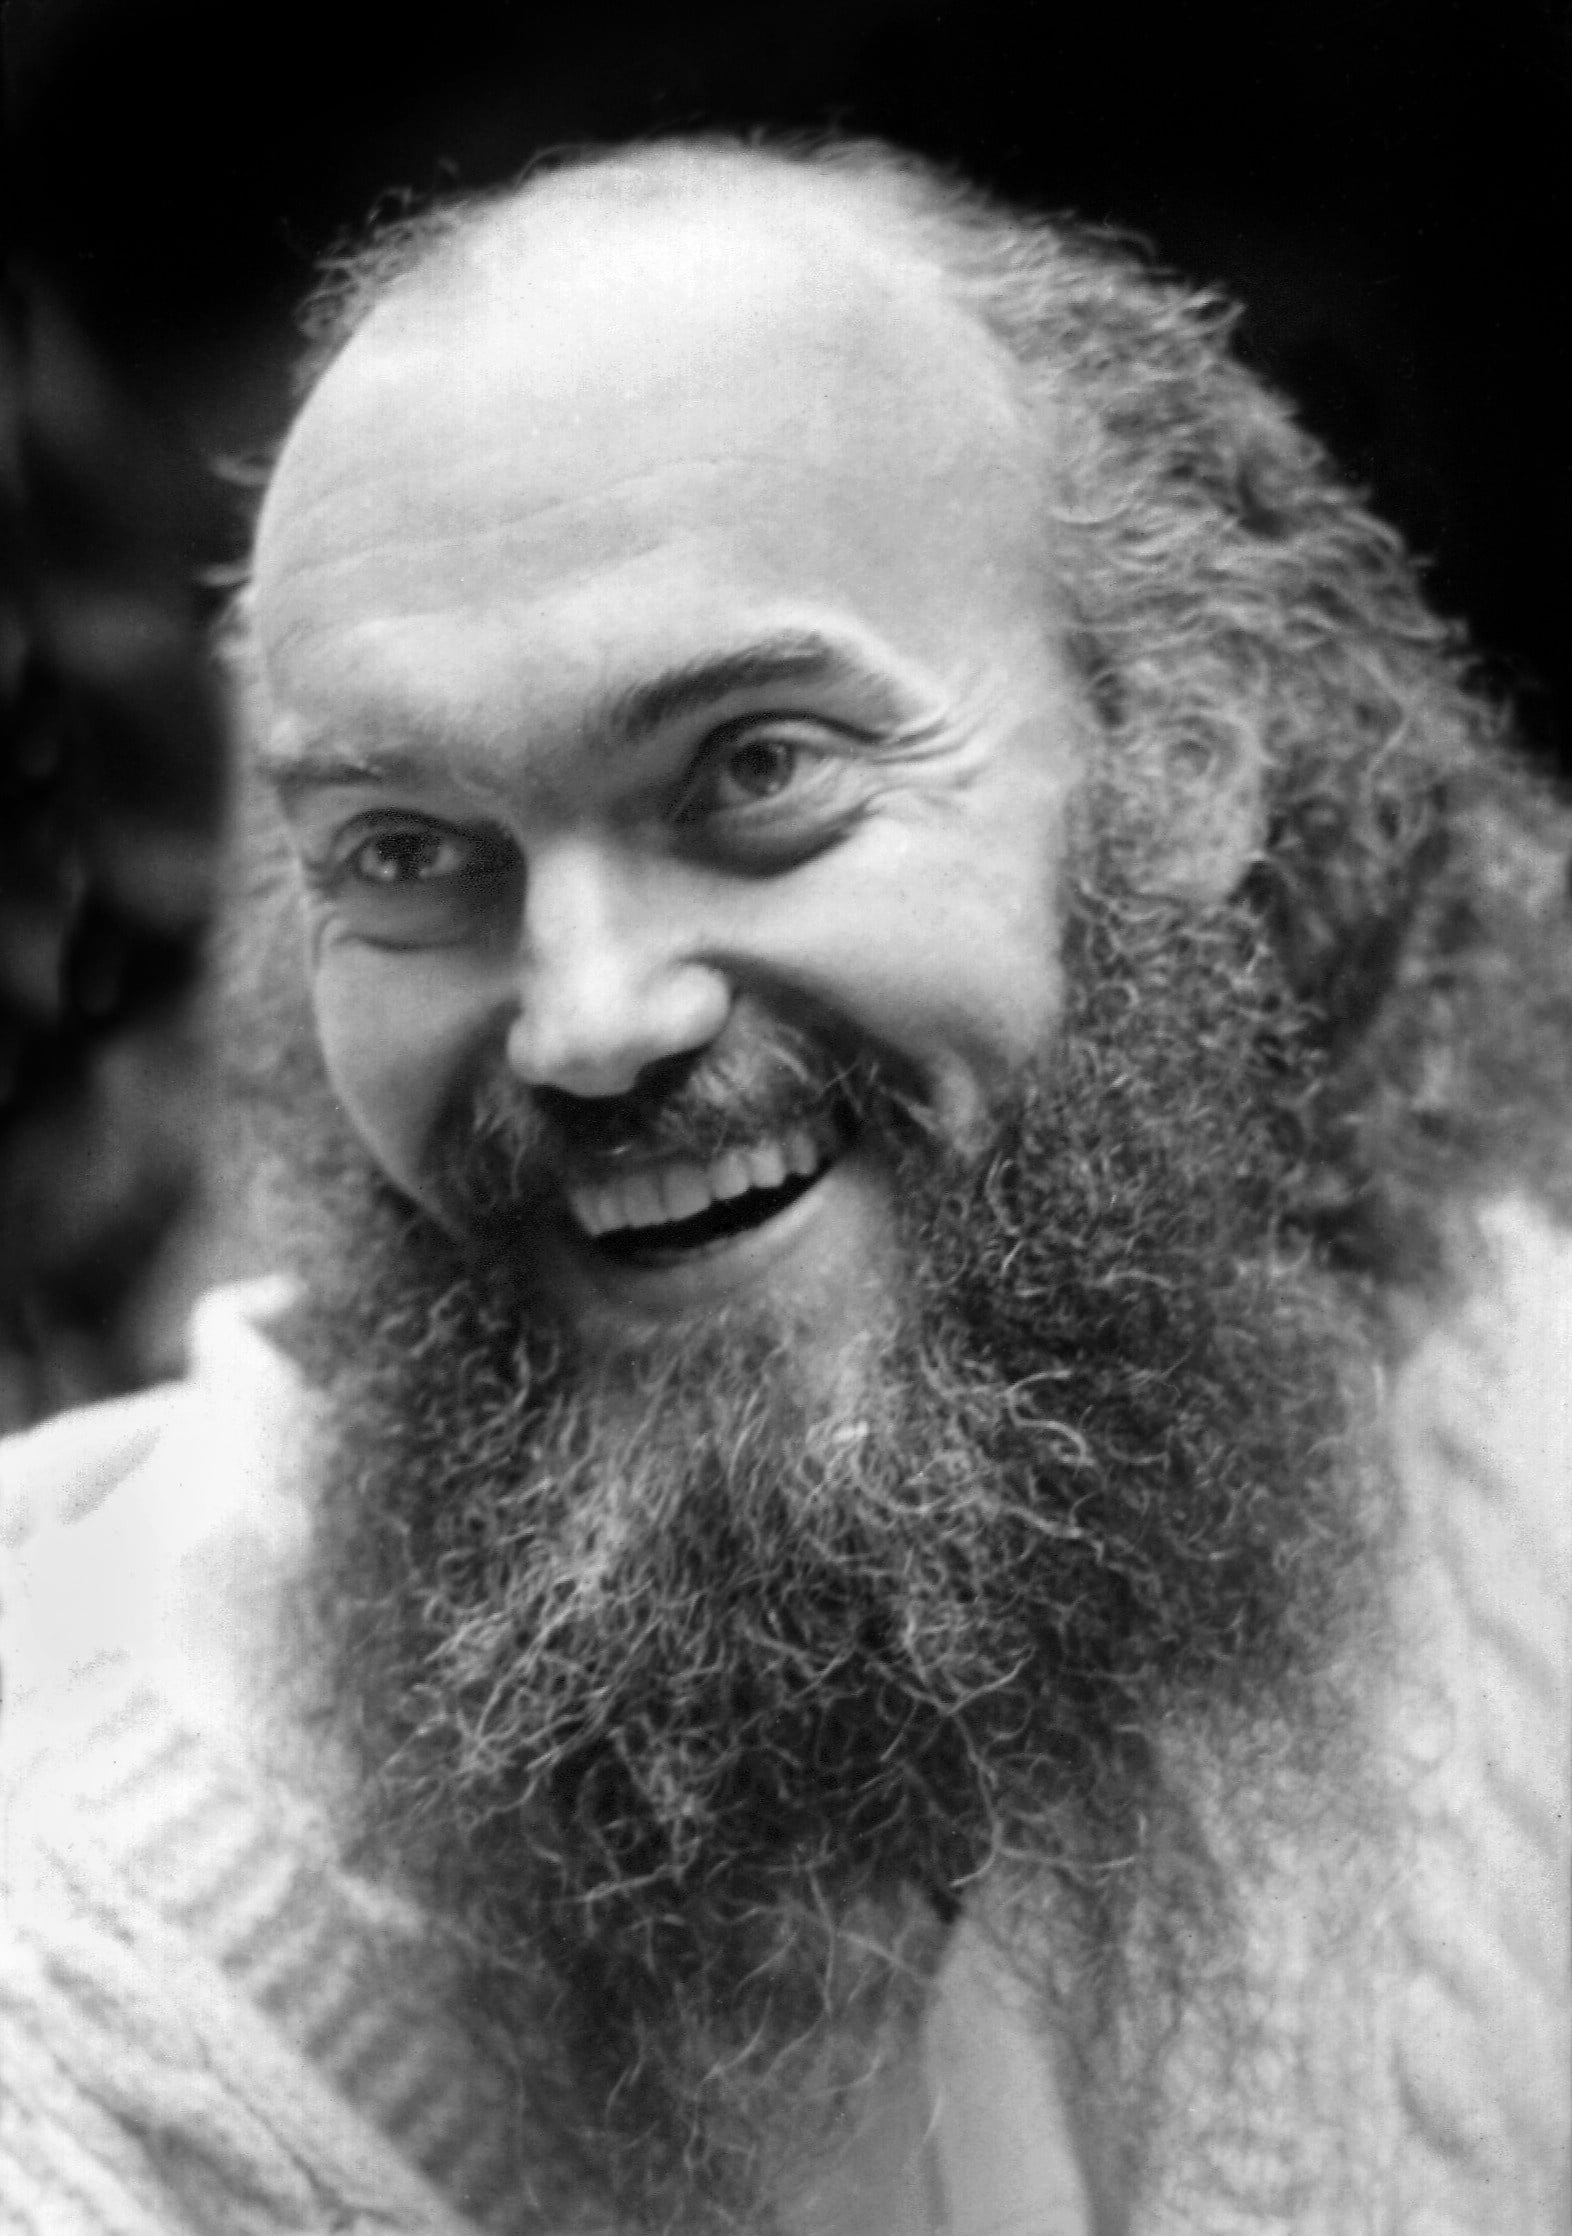 US Psychedelic Pioneer 'A RADIANT SOUL' Ram Dass Who Experimented with LSD Dies Aged 88